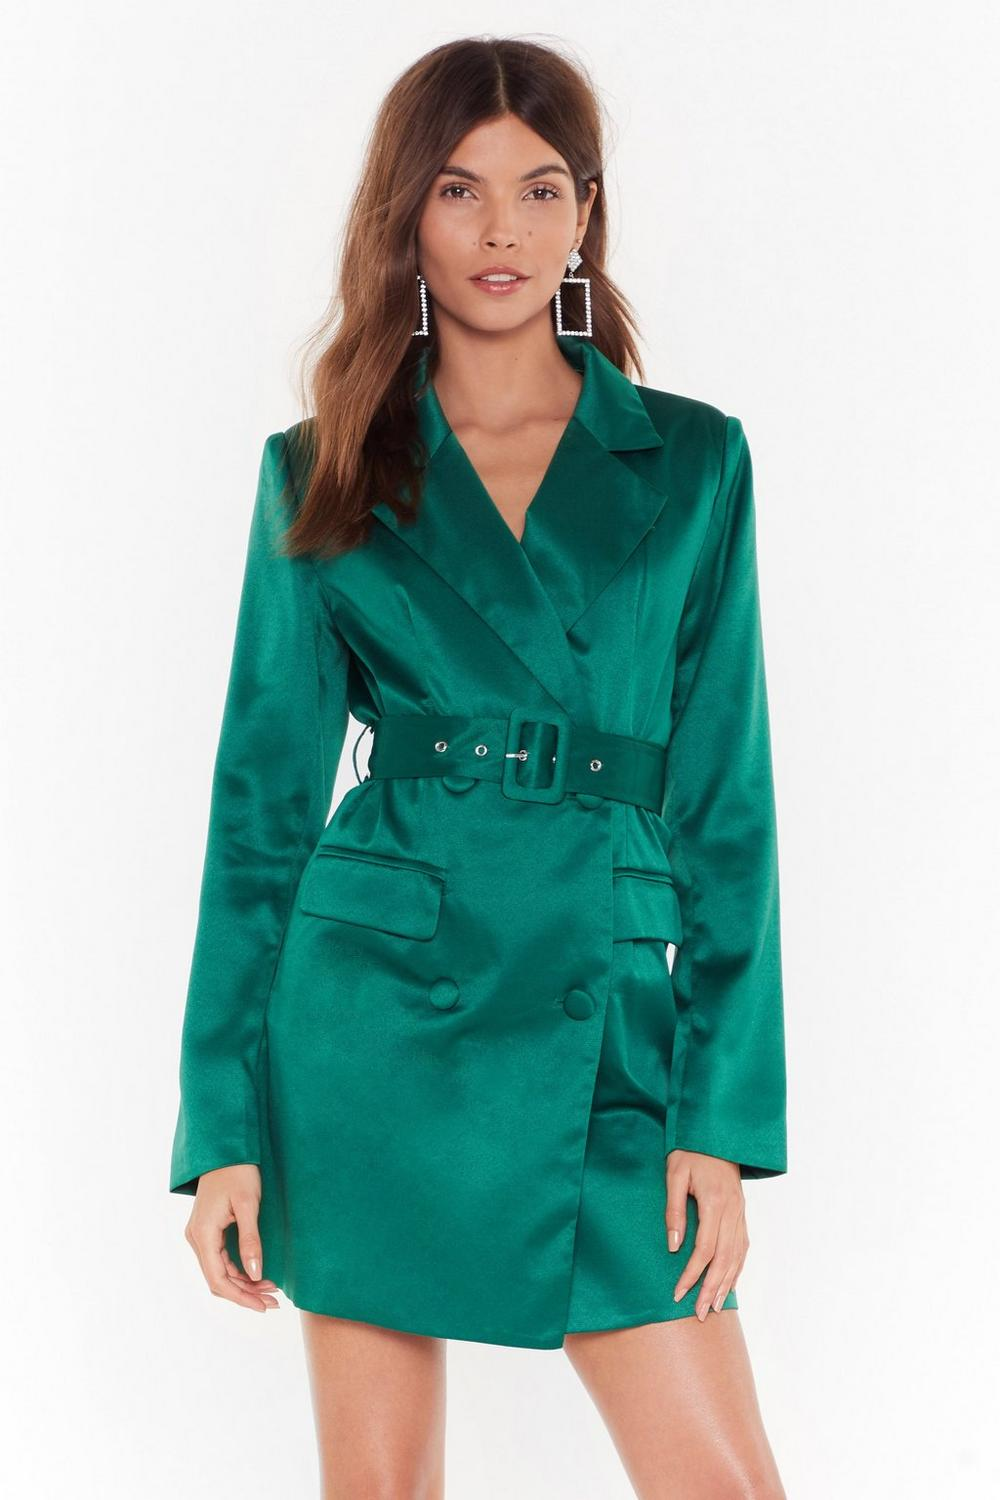 Taking Care of Business Satin Dress